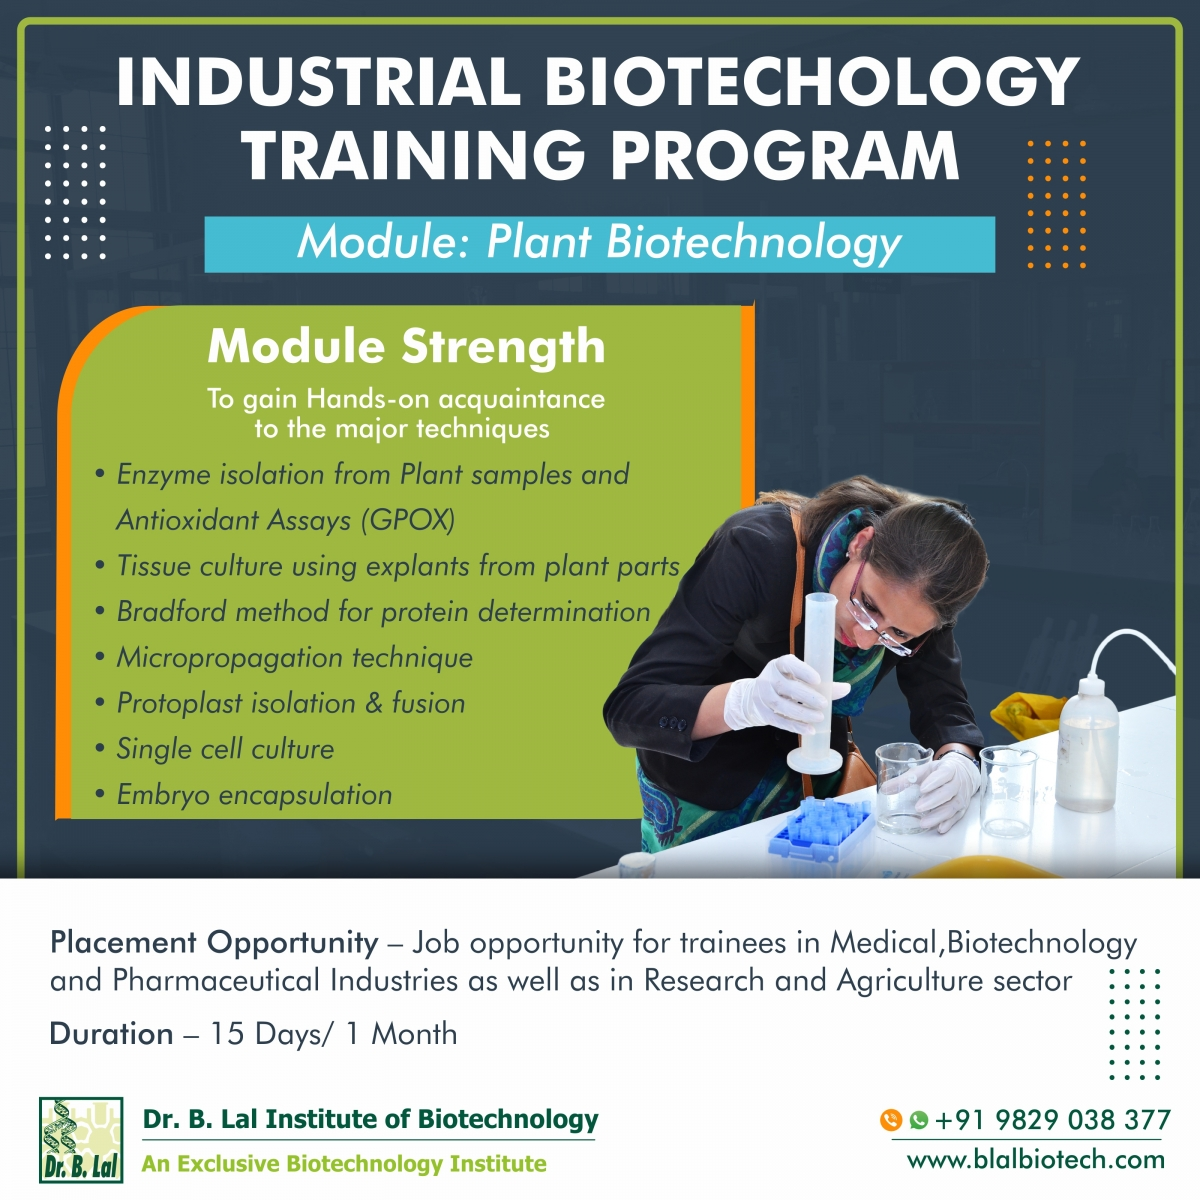 Industrial Biotechnology Training Program | Module: Plant Biotechnology